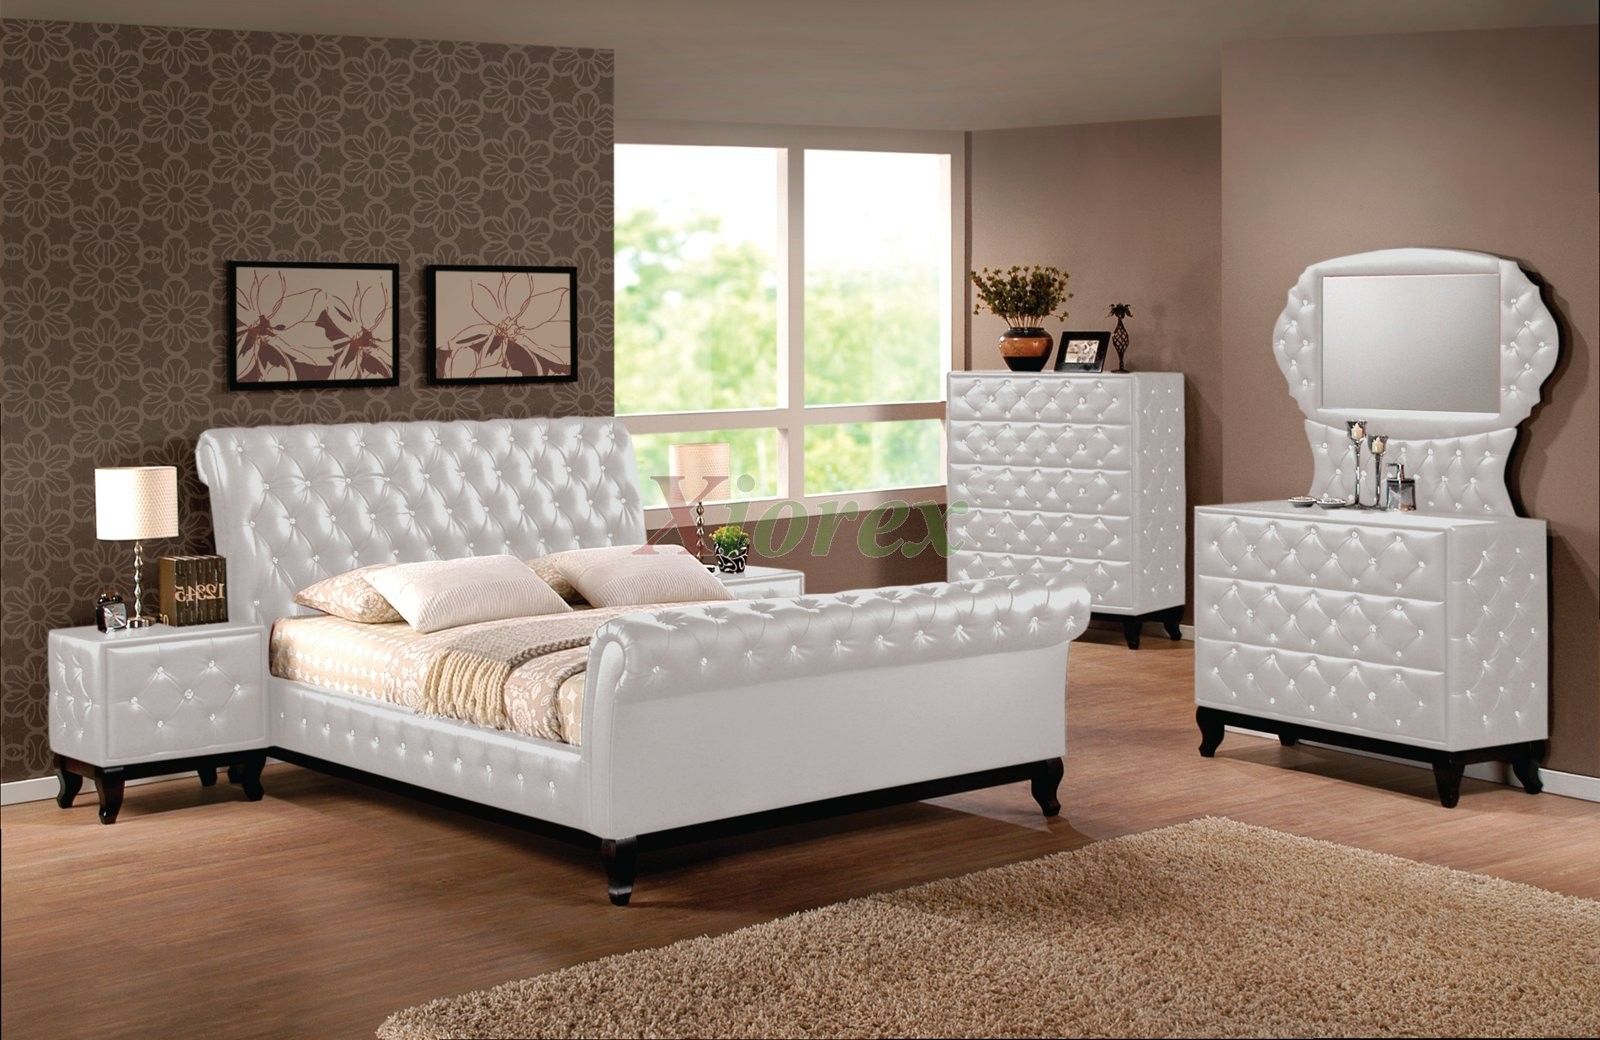 Upholstered sleigh platform bedroom furniture set 151 xiorex for Bedroom furnishings